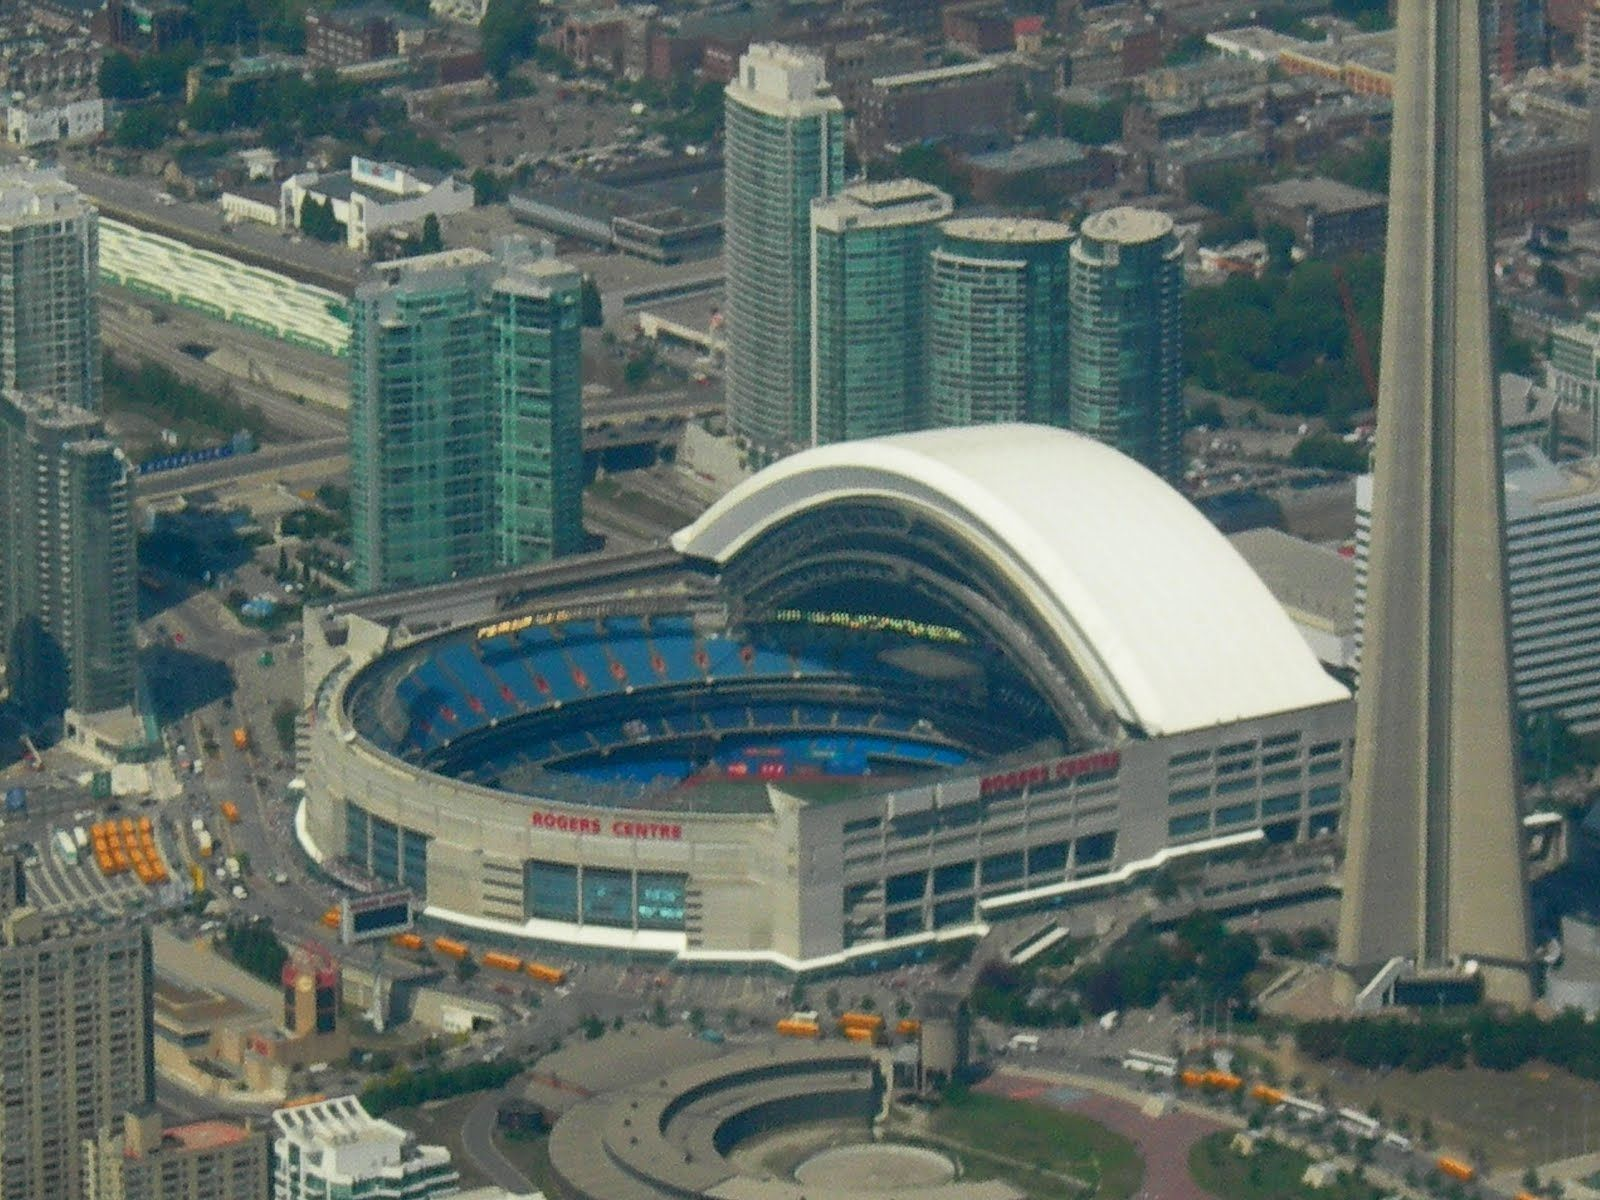 Toronto Blue Jays Skydome Toronto On Great City Great Park Location Seems A Little Dated Now With Other More Modern Rogers Centre Toronto City Tourism